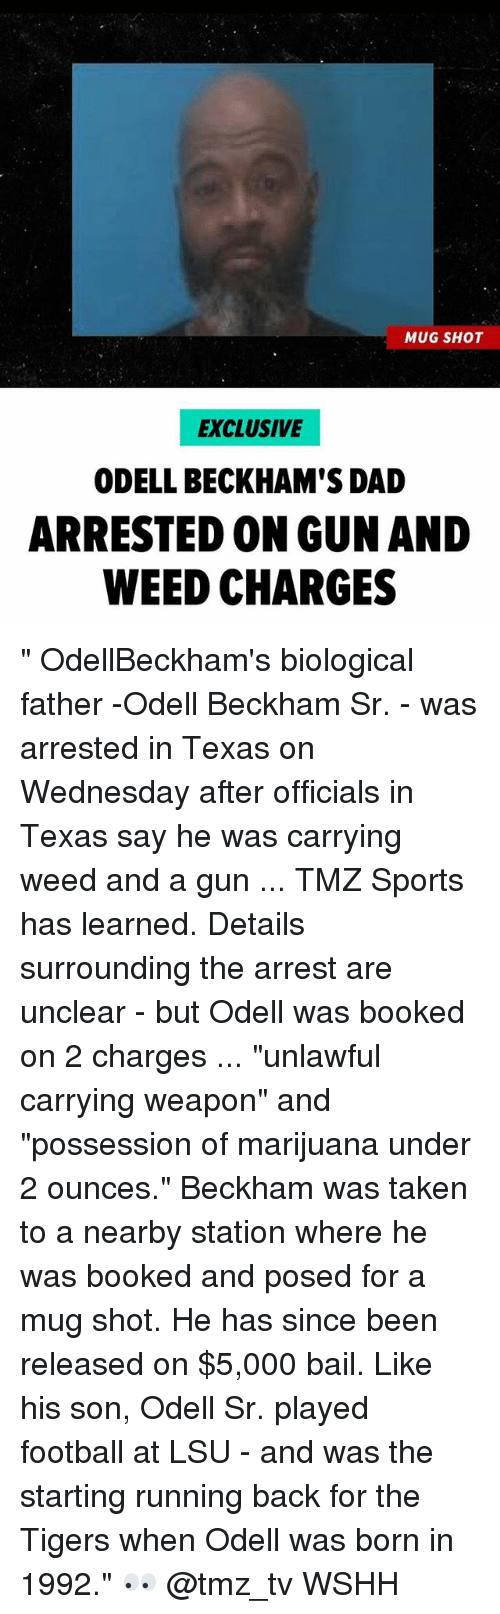 "tmz sports: MUG SHOT  EXCLUSIVE  ODELL BECKHAM'S DAD  ARRESTED ON GUN AND  WEED CHARGES "" OdellBeckham's biological father -Odell Beckham Sr. - was arrested in Texas on Wednesday after officials in Texas say he was carrying weed and a gun ... TMZ Sports has learned. Details surrounding the arrest are unclear - but Odell was booked on 2 charges ... ""unlawful carrying weapon"" and ""possession of marijuana under 2 ounces."" Beckham was taken to a nearby station where he was booked and posed for a mug shot. He has since been released on $5,000 bail. Like his son, Odell Sr. played football at LSU - and was the starting running back for the Tigers when Odell was born in 1992."" 👀 @tmz_tv WSHH"